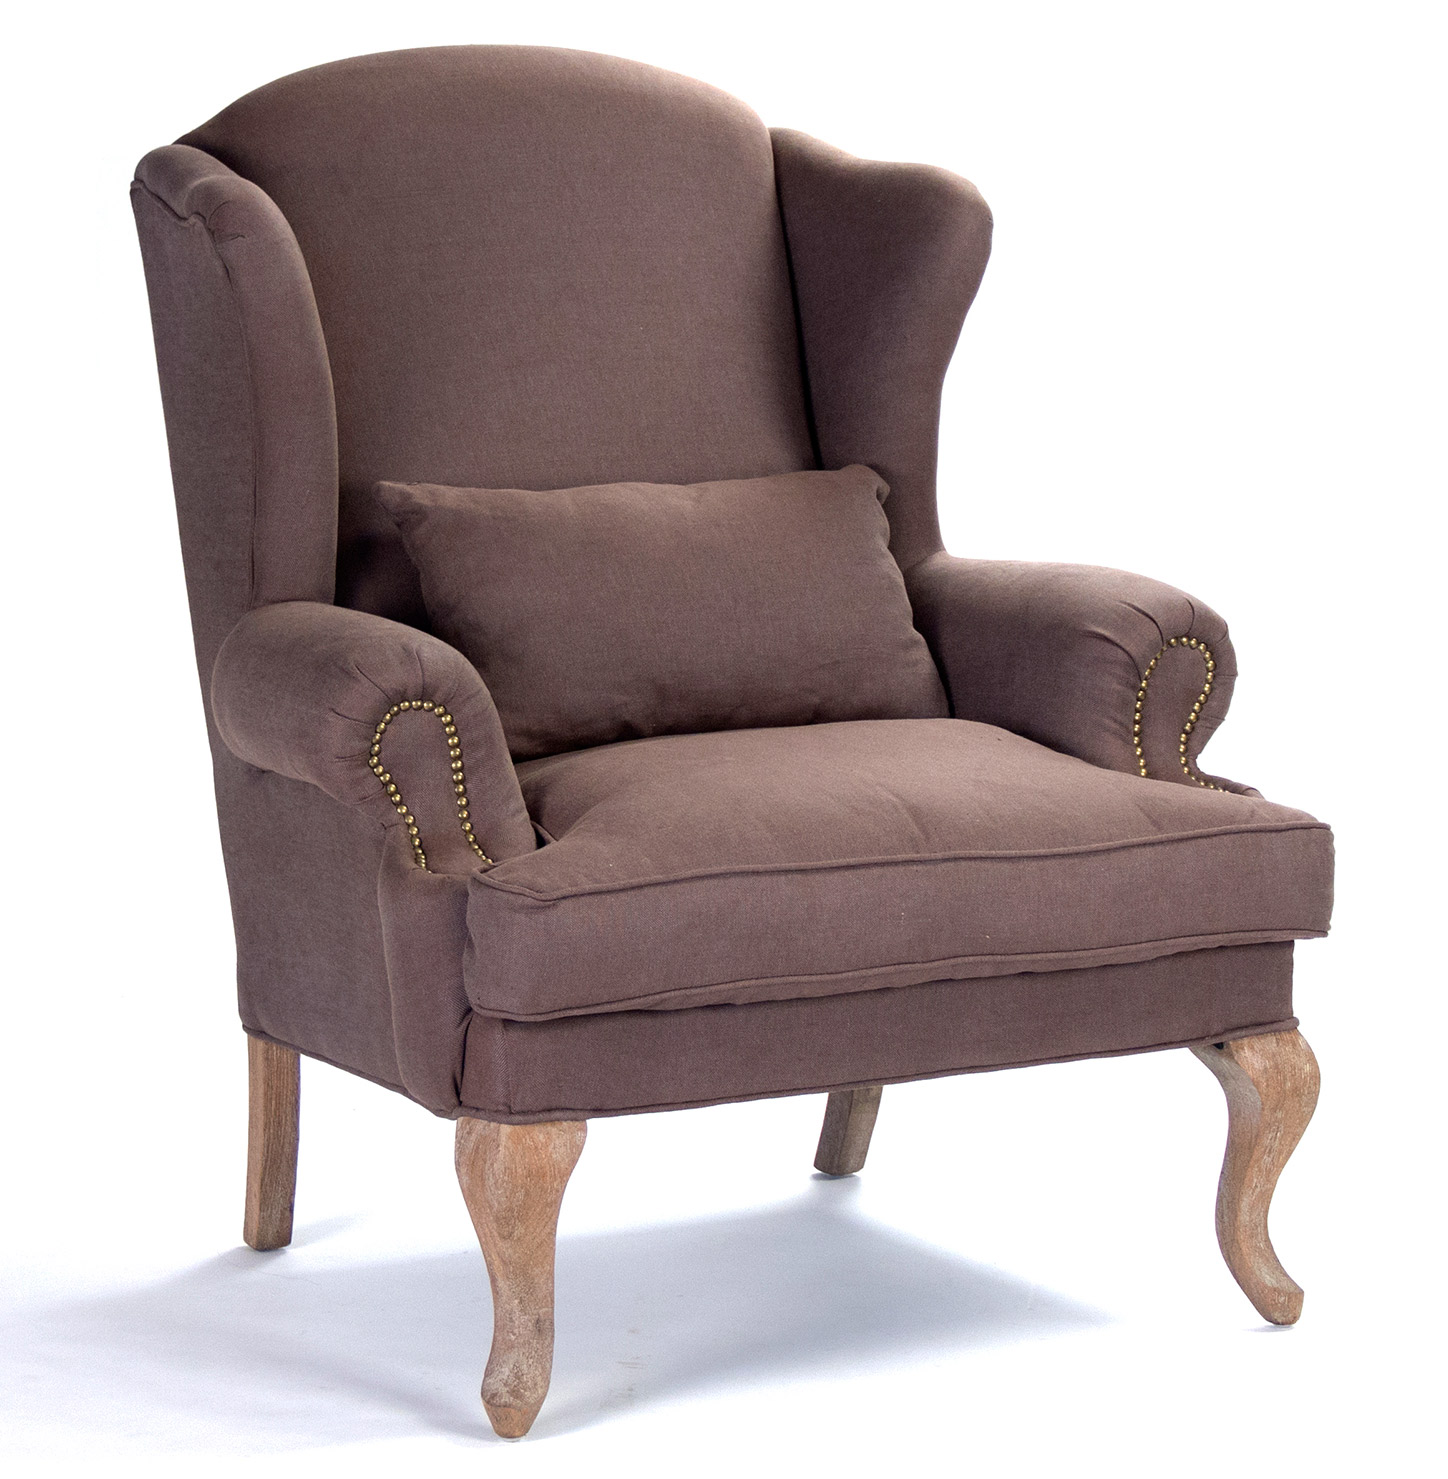 Zacharie French Country Nail Head Brown Wing Chair